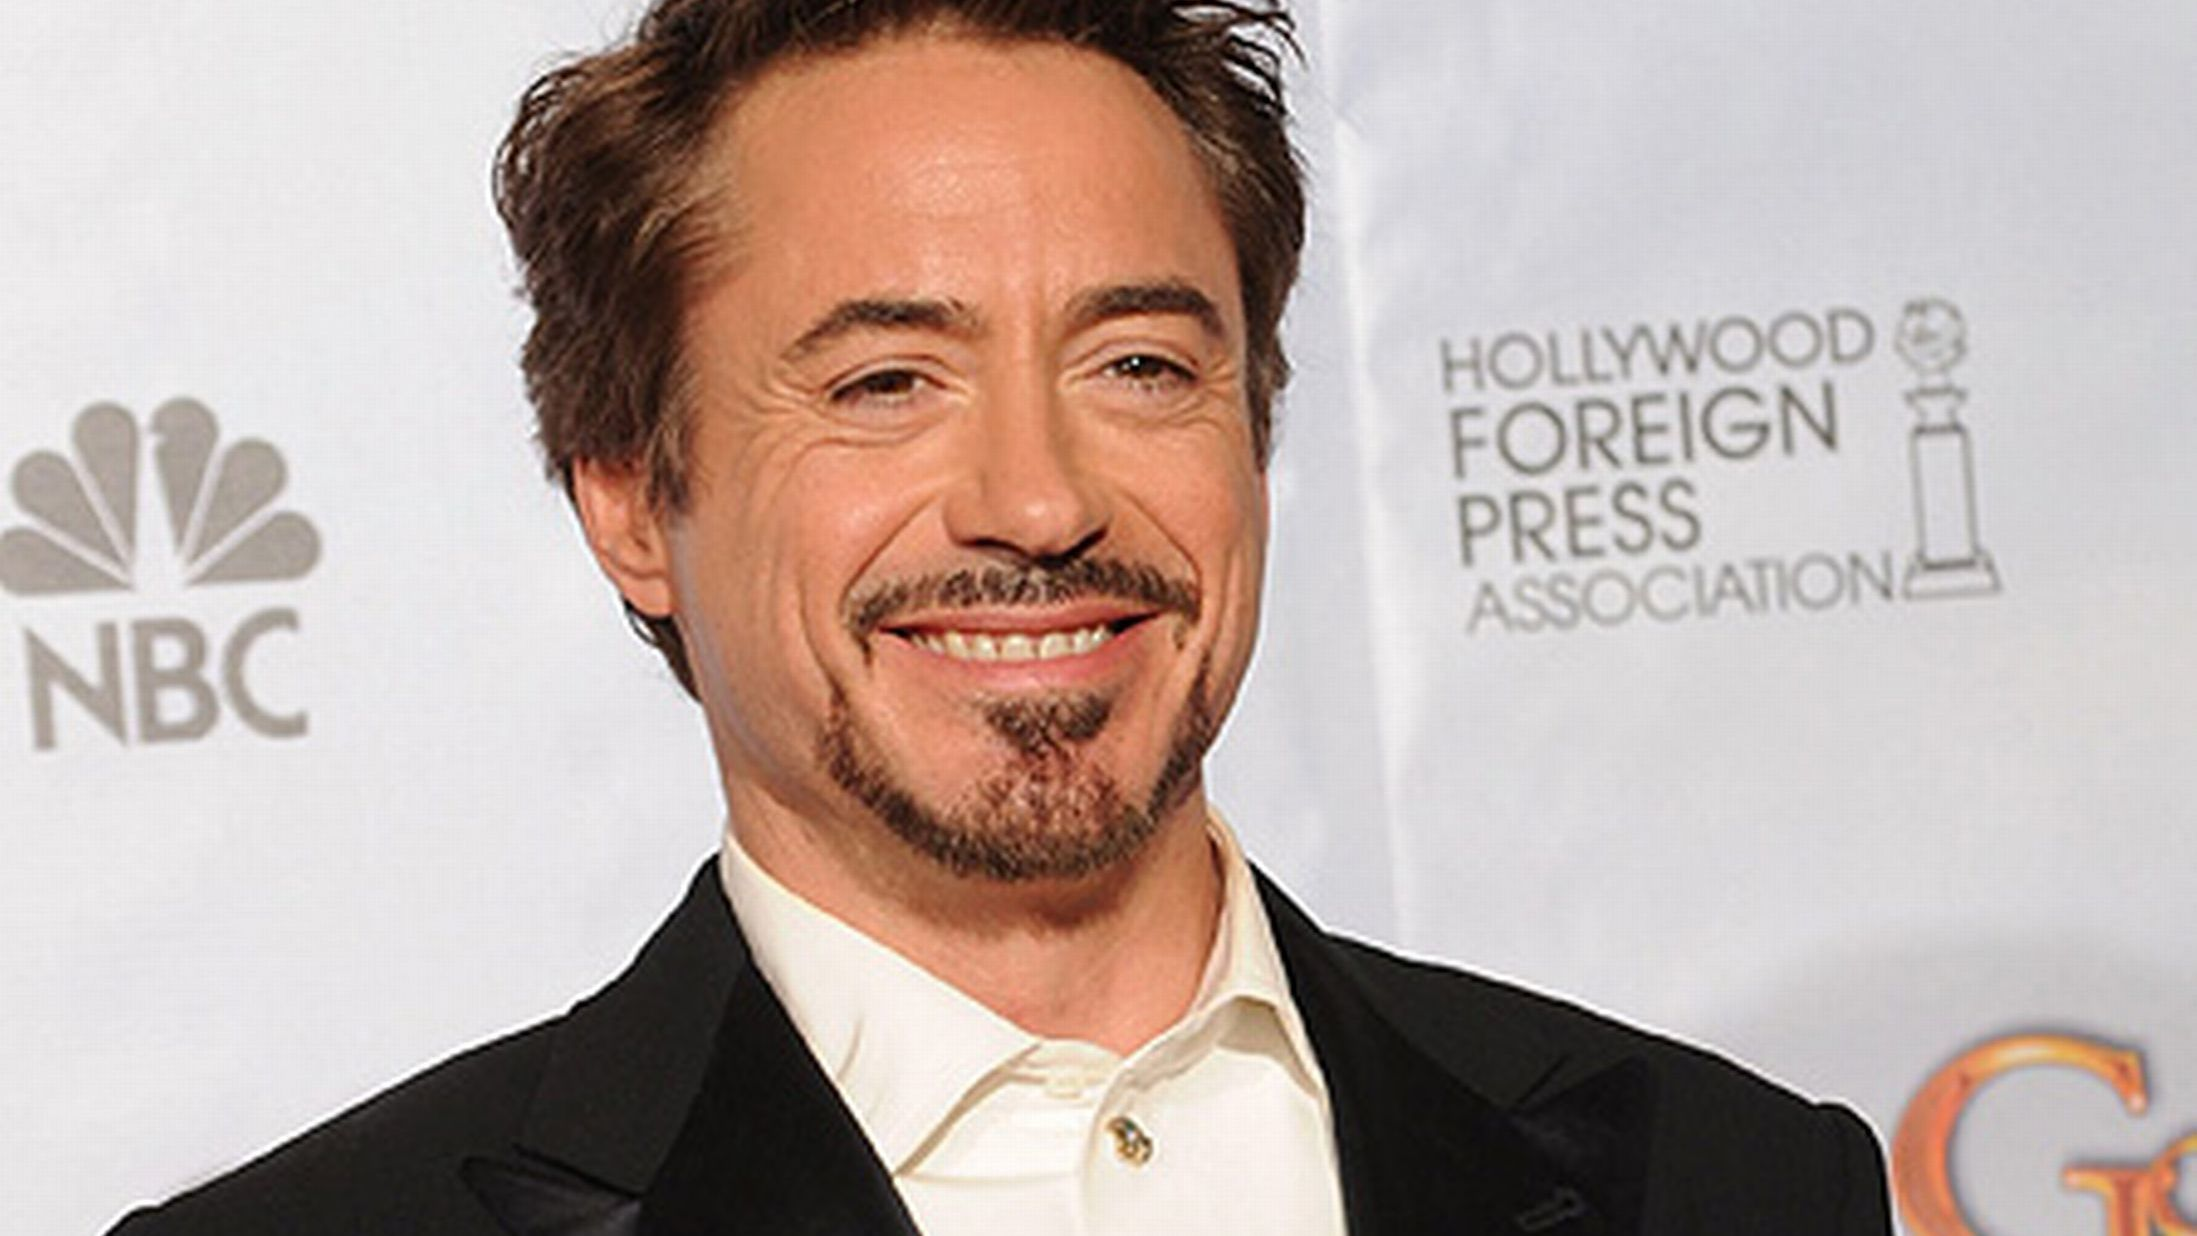 Robert Downey Jr. als Leonardo da Vinci in 'Assassin's Creed'?